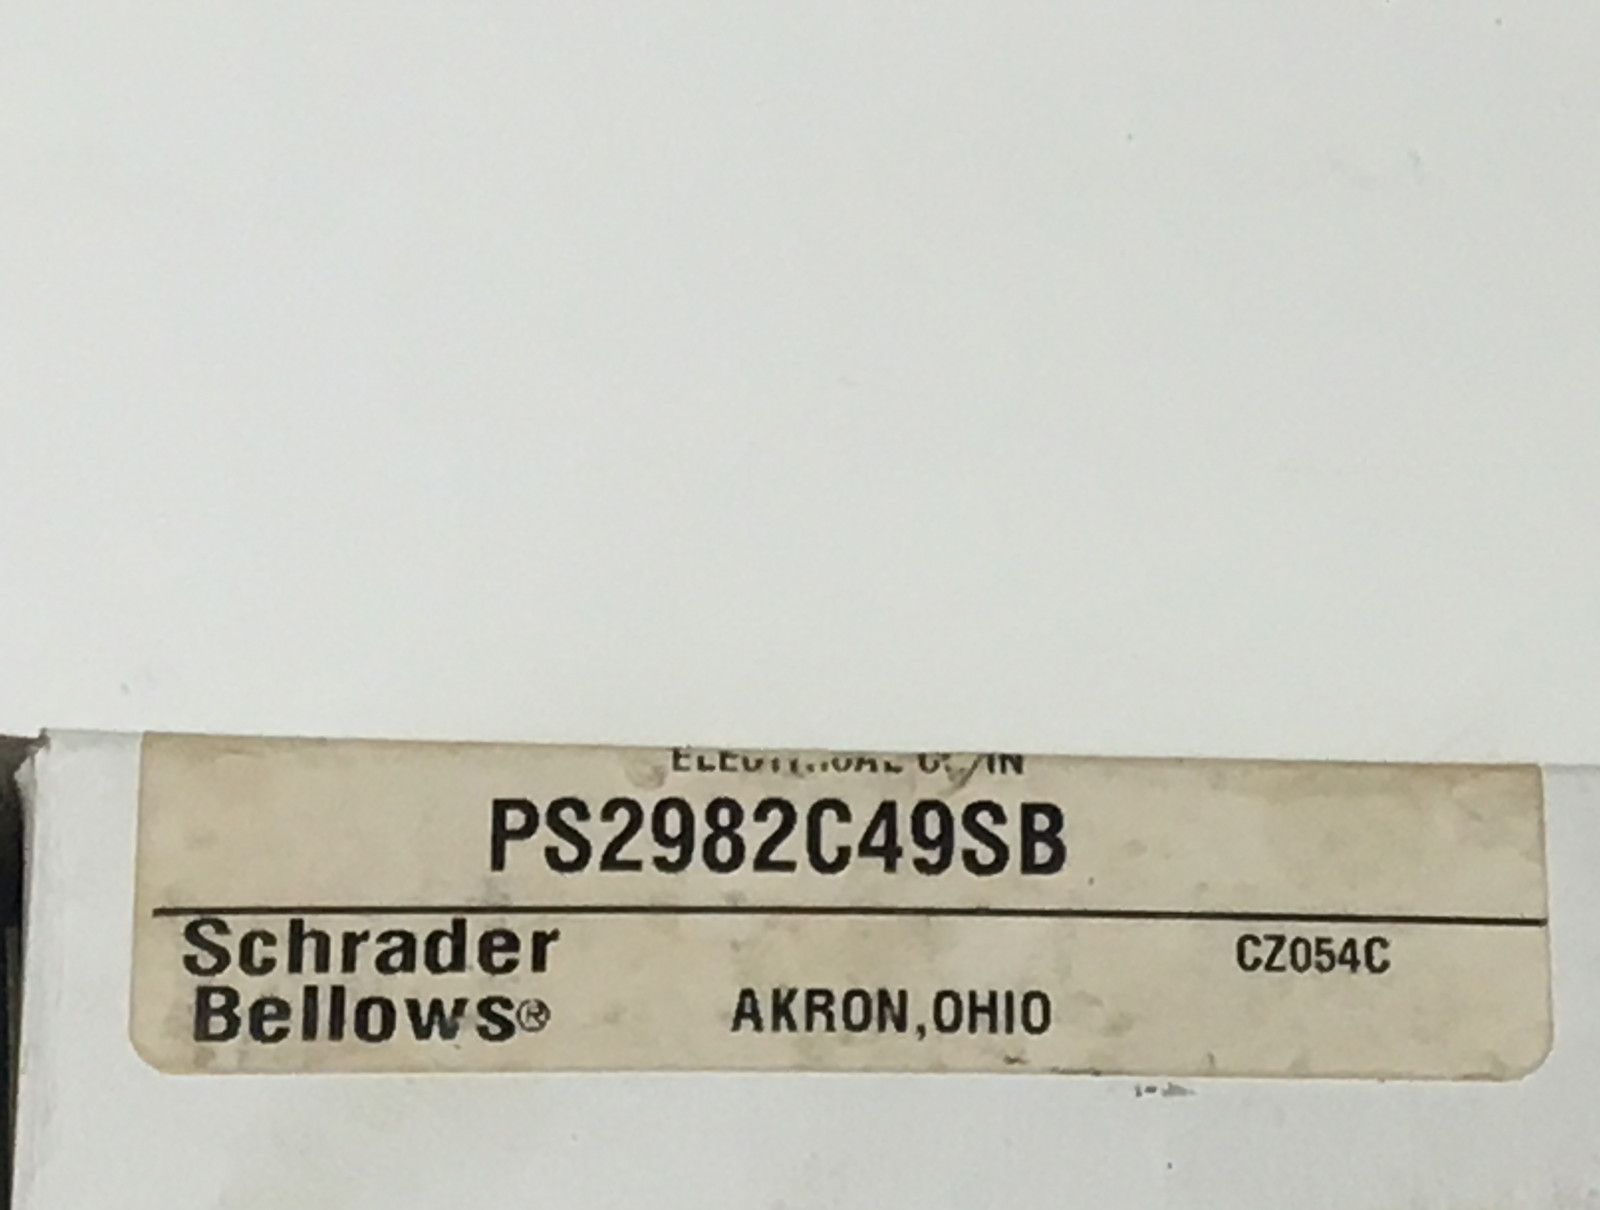 Schrader Bellows PS2982C49SB Solenoid Valve Repair Service Kit 24vdc 1.2w